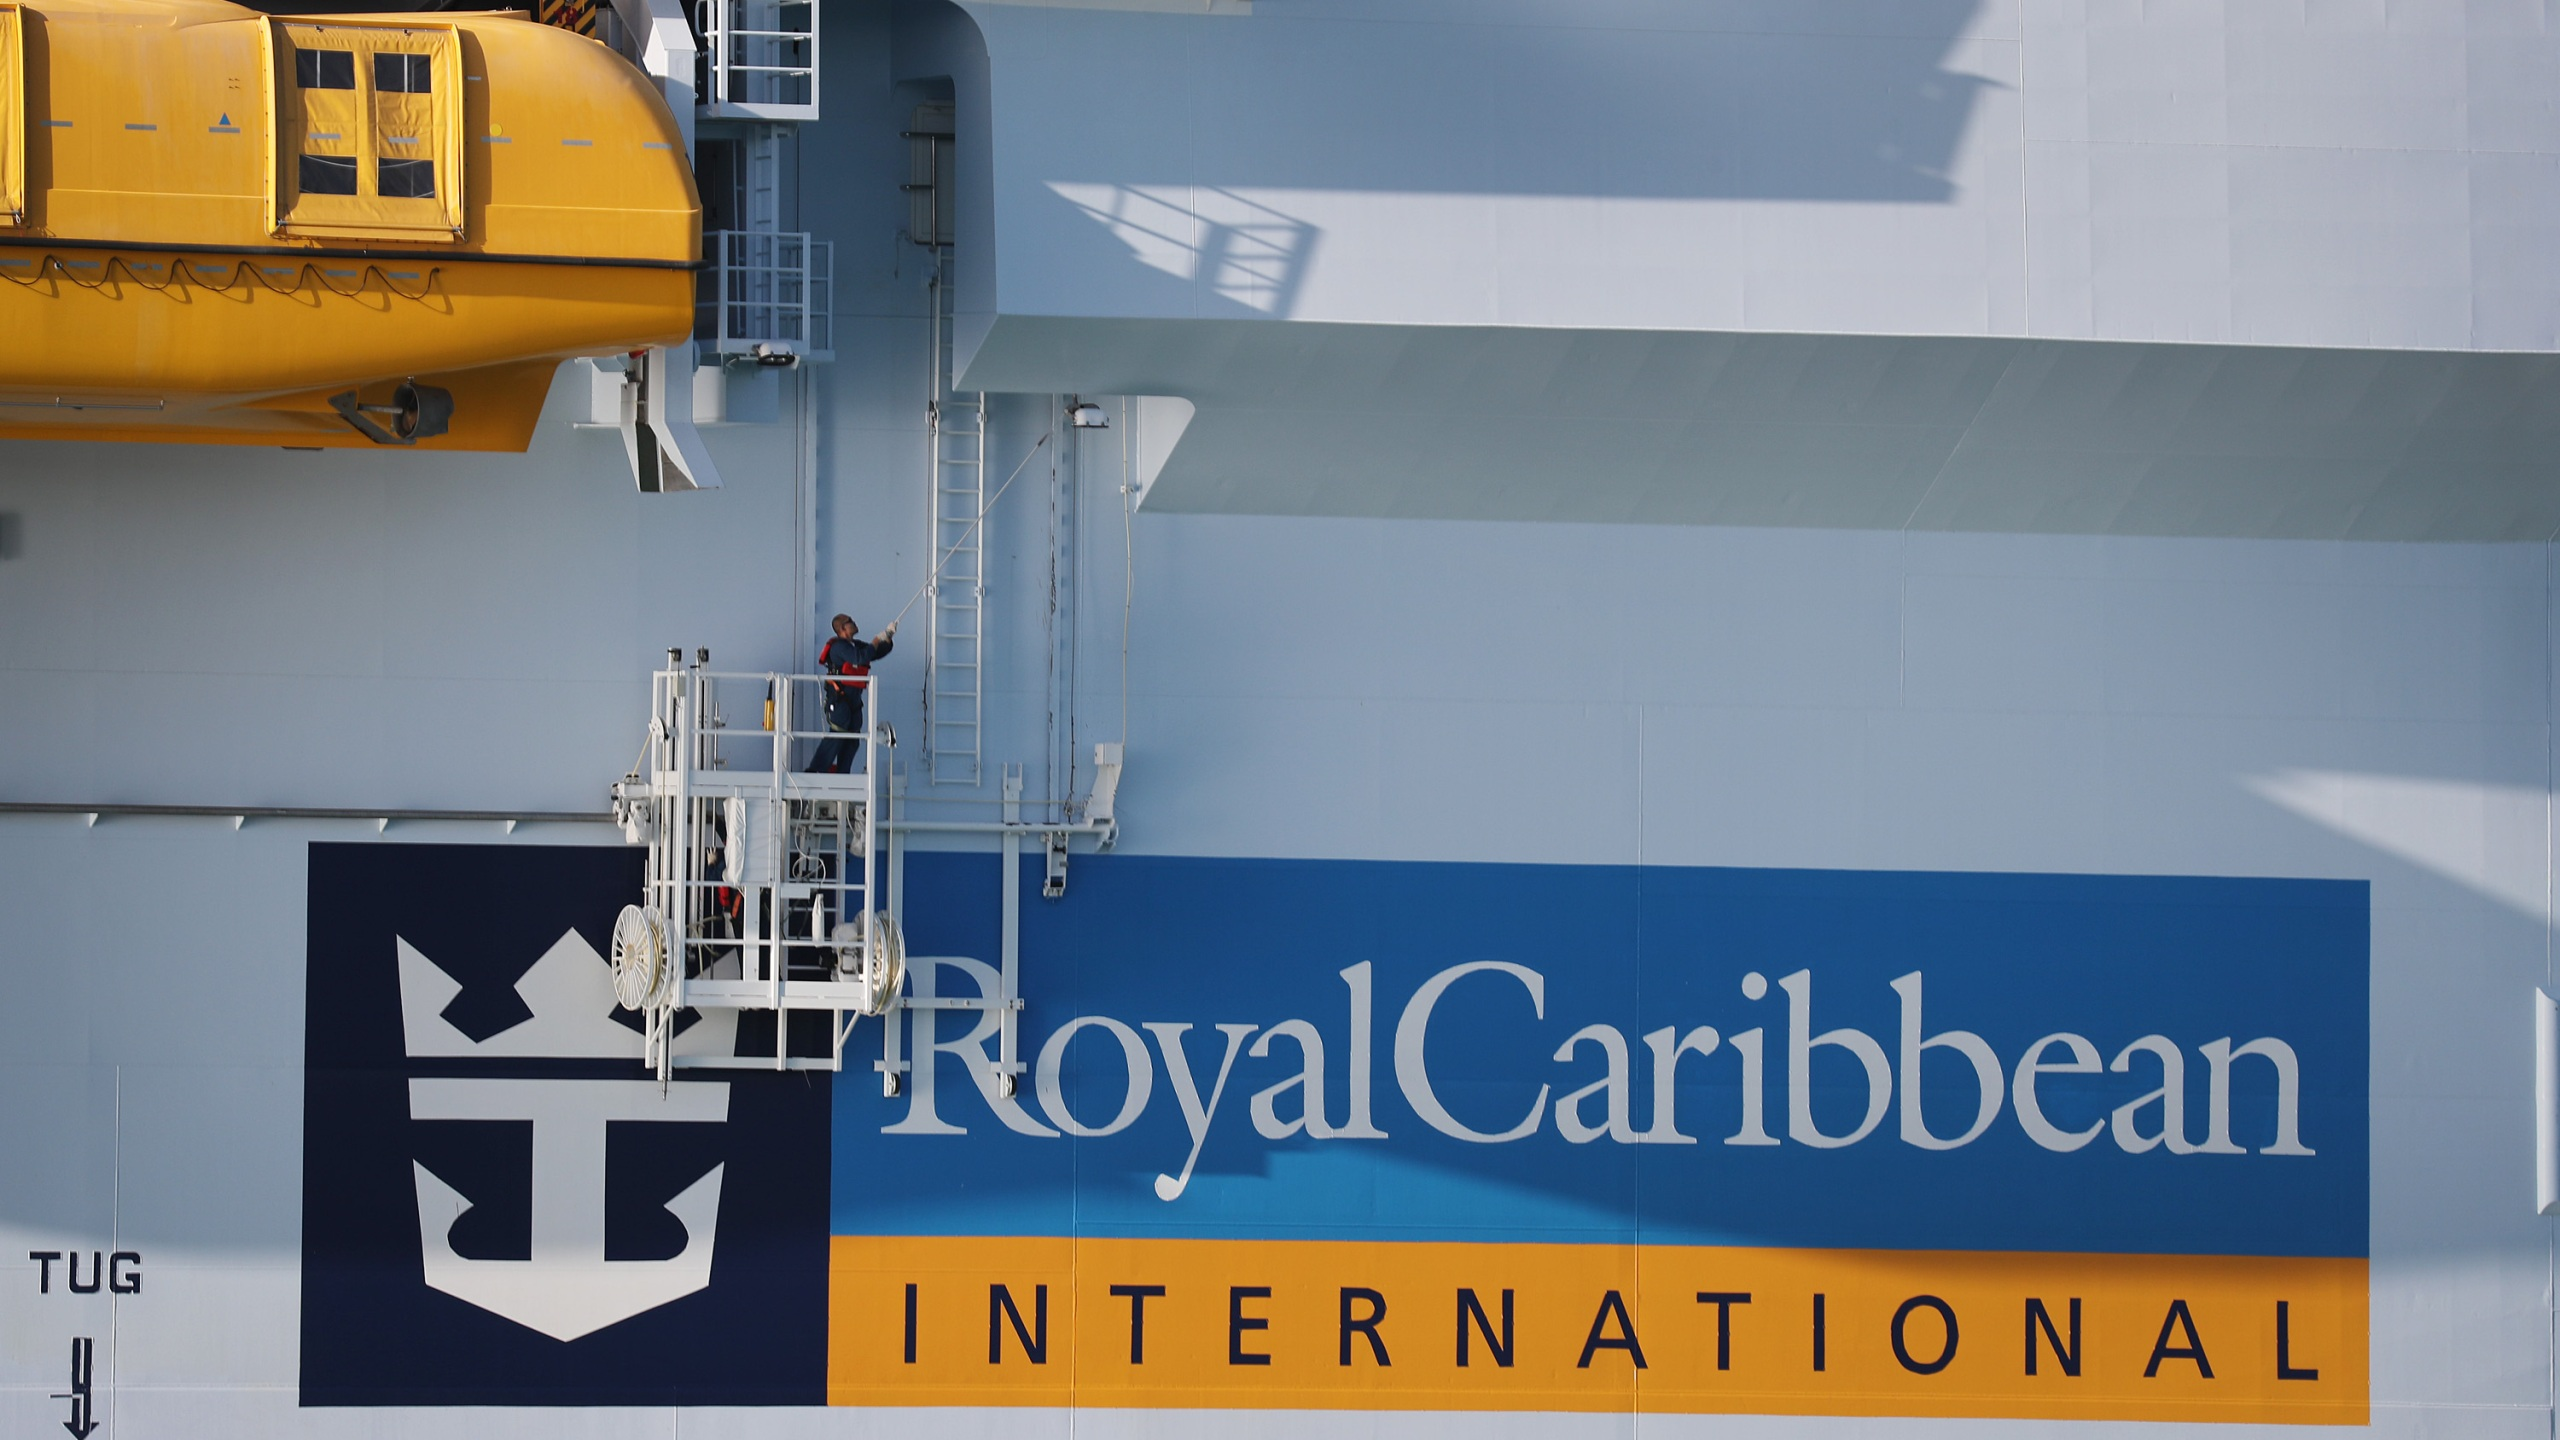 A worker paints the side of the Royal Caribbean Symphony of the Seas cruise ship, which is the world's largest passenger liner, as it is docked at Port Miami after returning to port from a Eastern Caribbean cruise as the world grapples with the coronavirus outbreak on March 14, 2020 in Miami, Florida. (Joe Raedle/Getty Images)